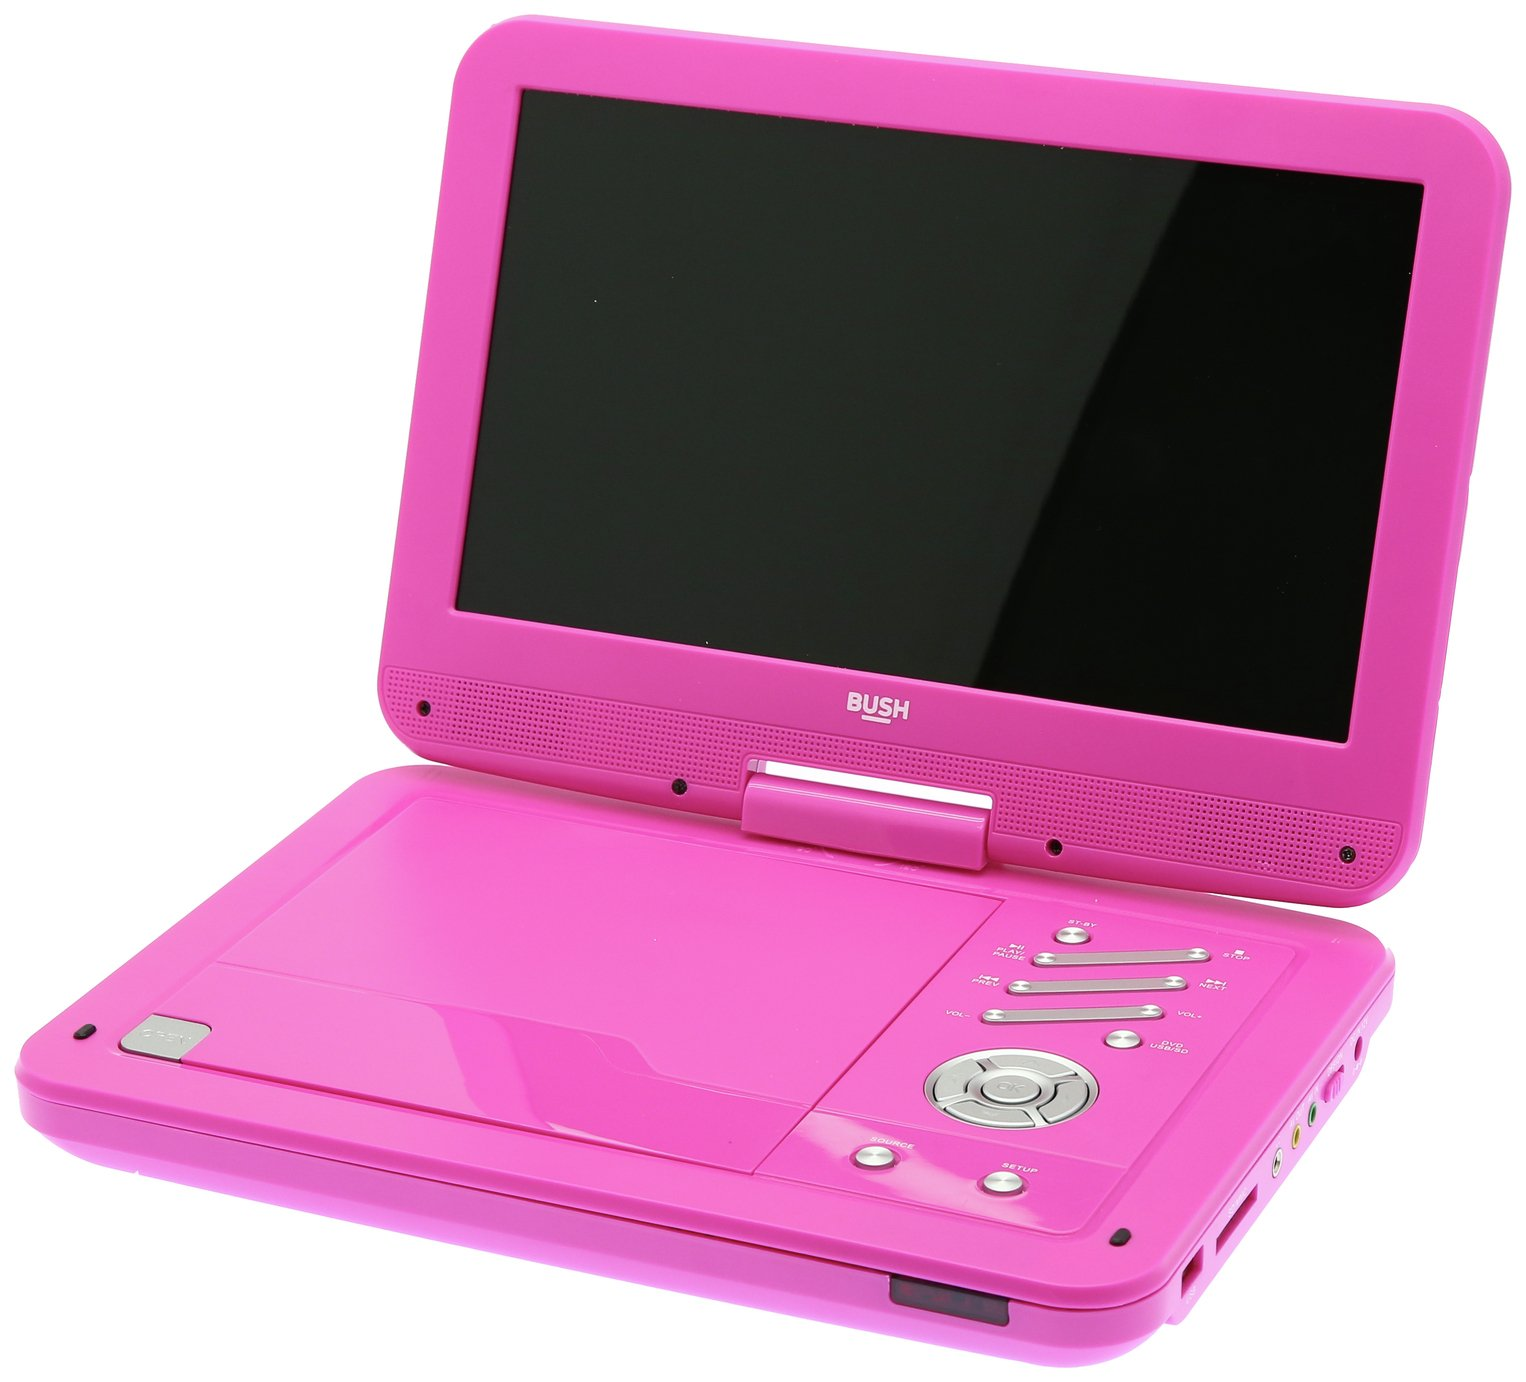 Image of Bush 10 Inch Portable DVD Player - Pink